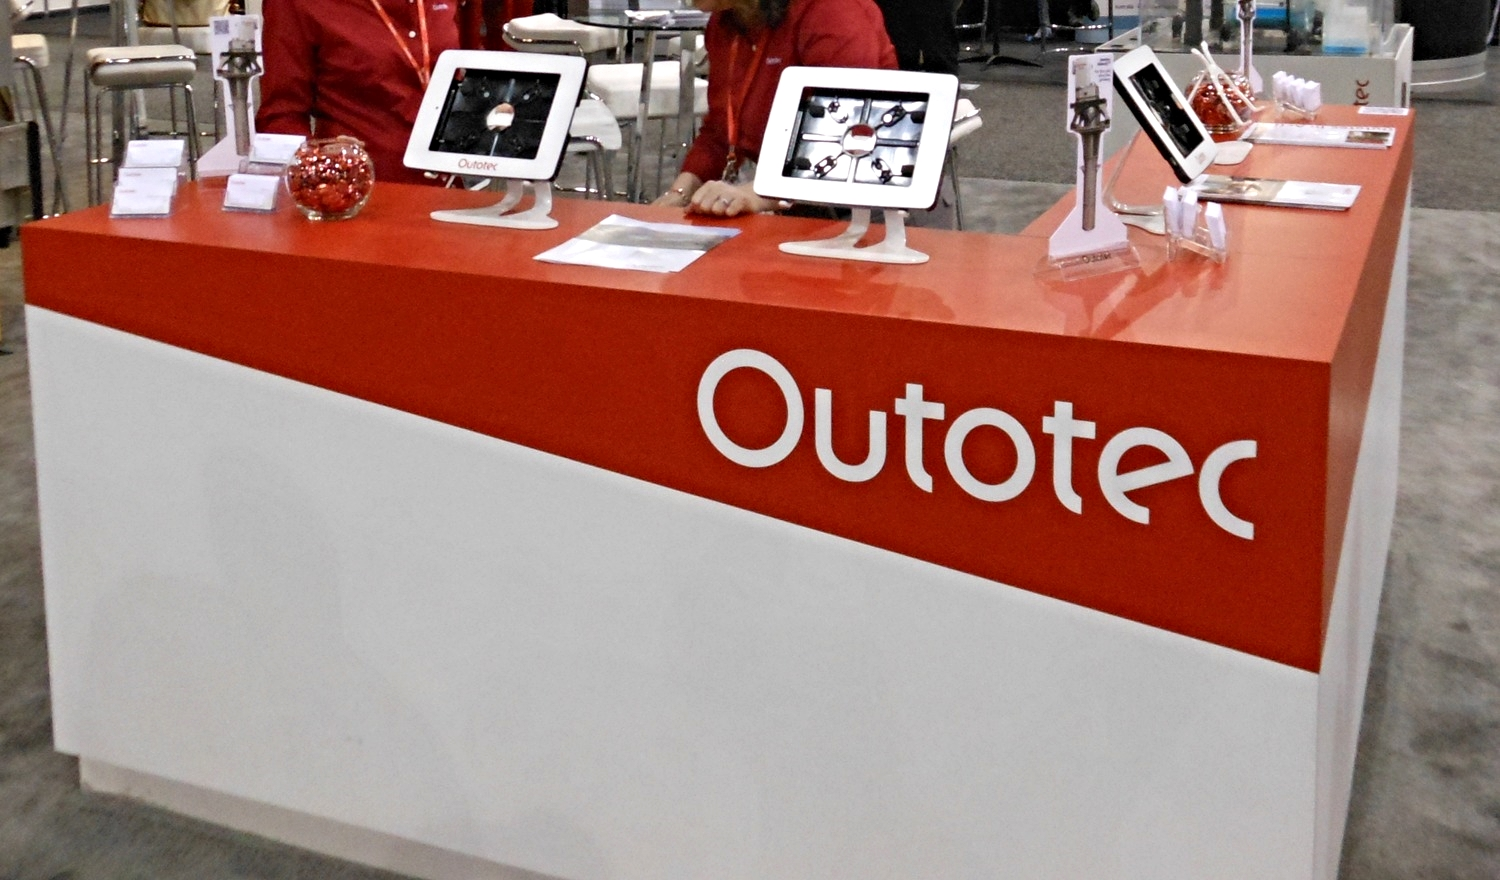 Outotec's exhibit featured a large hanging sign, custom millwork and modern furniture